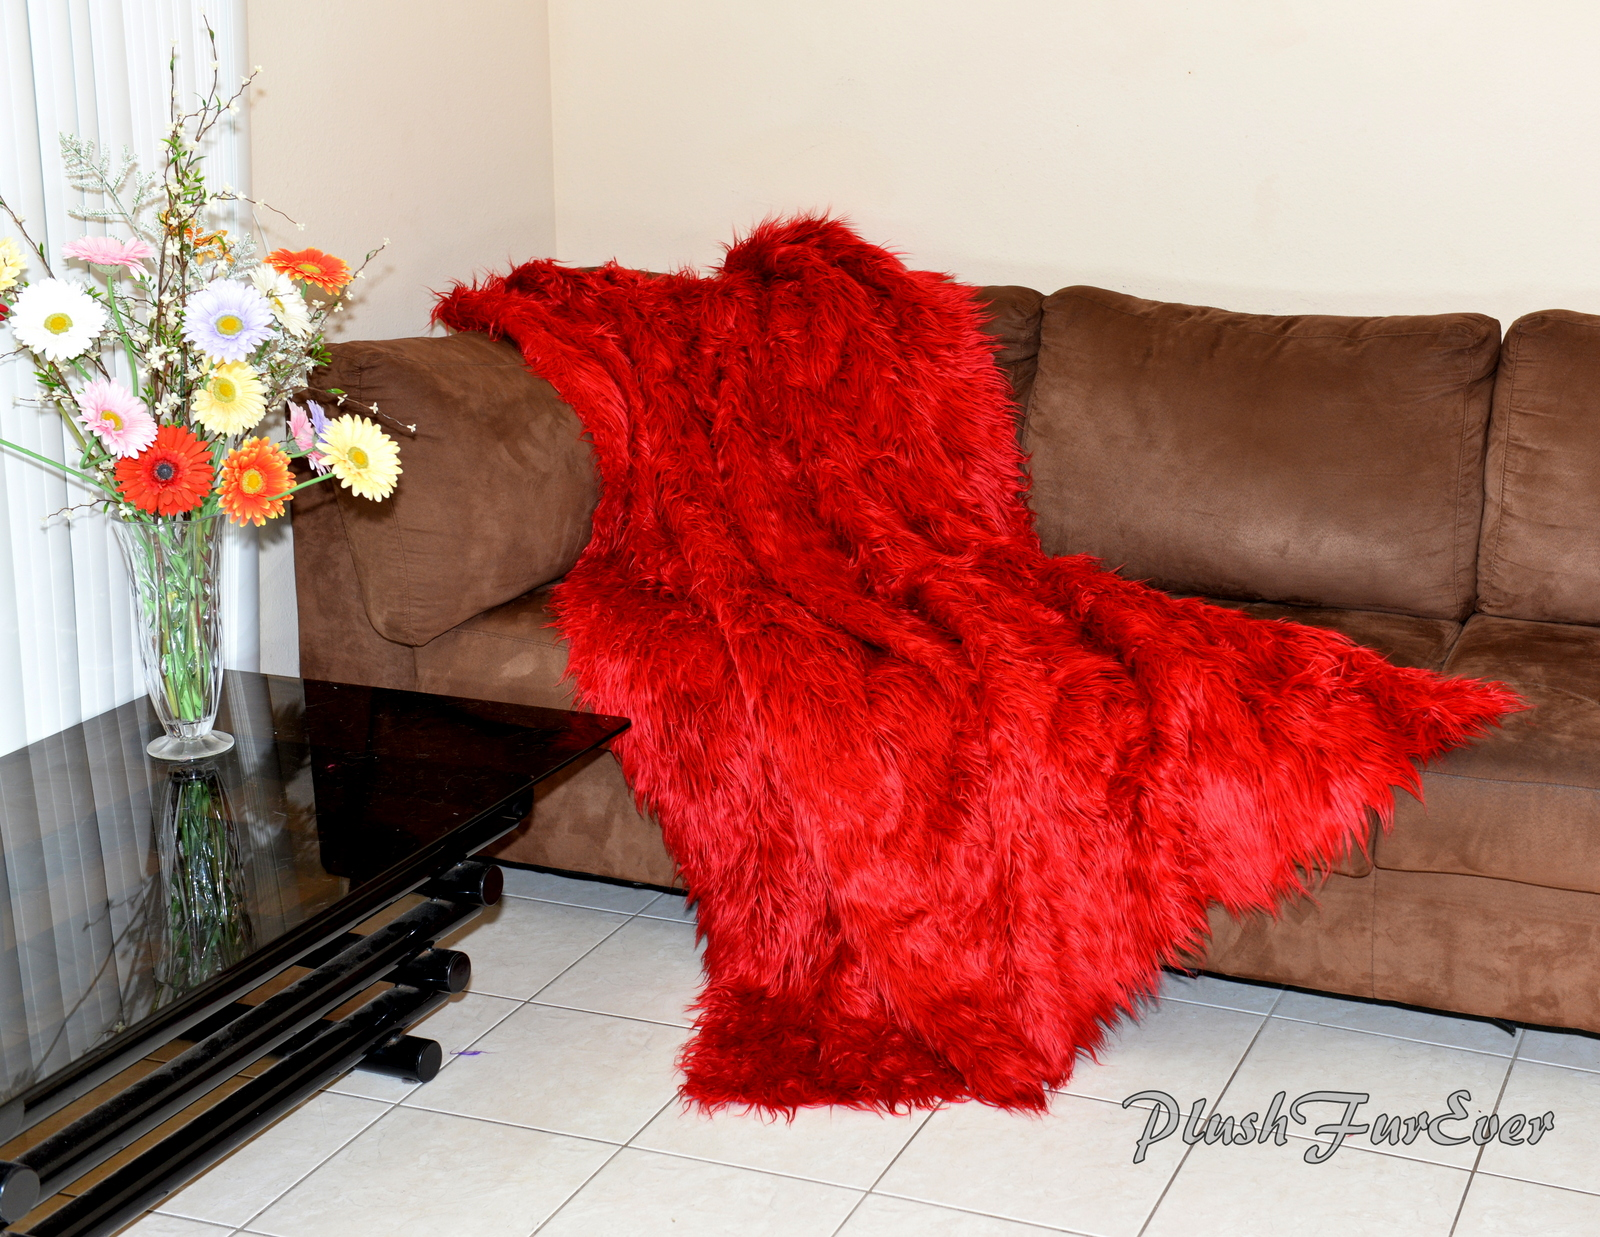 Red Mongolian Faux Fur Throws Comforters Blankets Couch Sofa Bedroom  Nursery Accent Luxurious Decor Mink Back Fake Acrylics Furs sold by  PlushFurEver